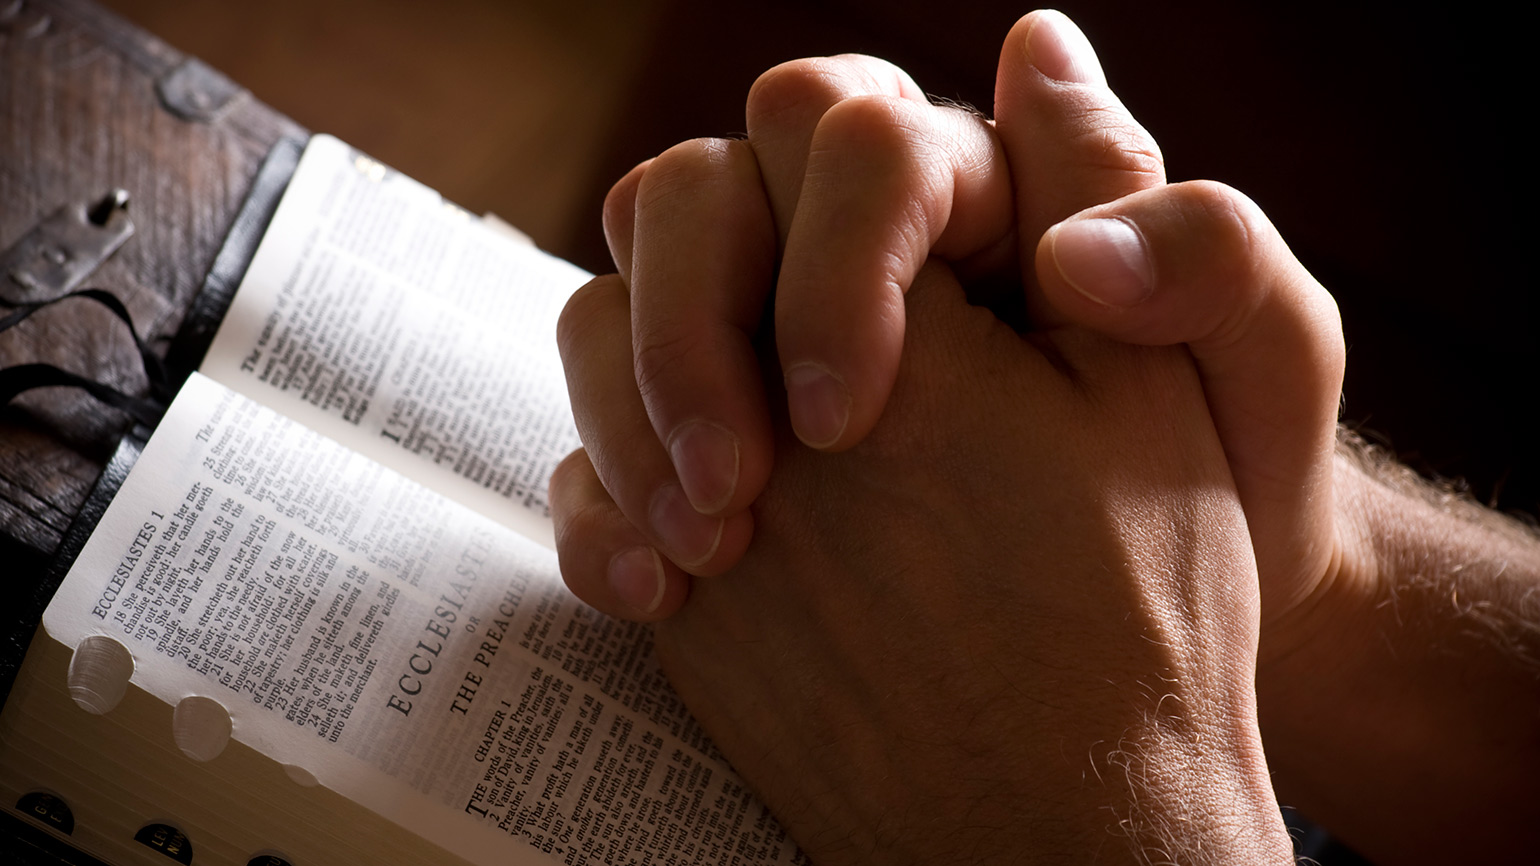 A mans hands, clasped in prayer, rest on a Bible